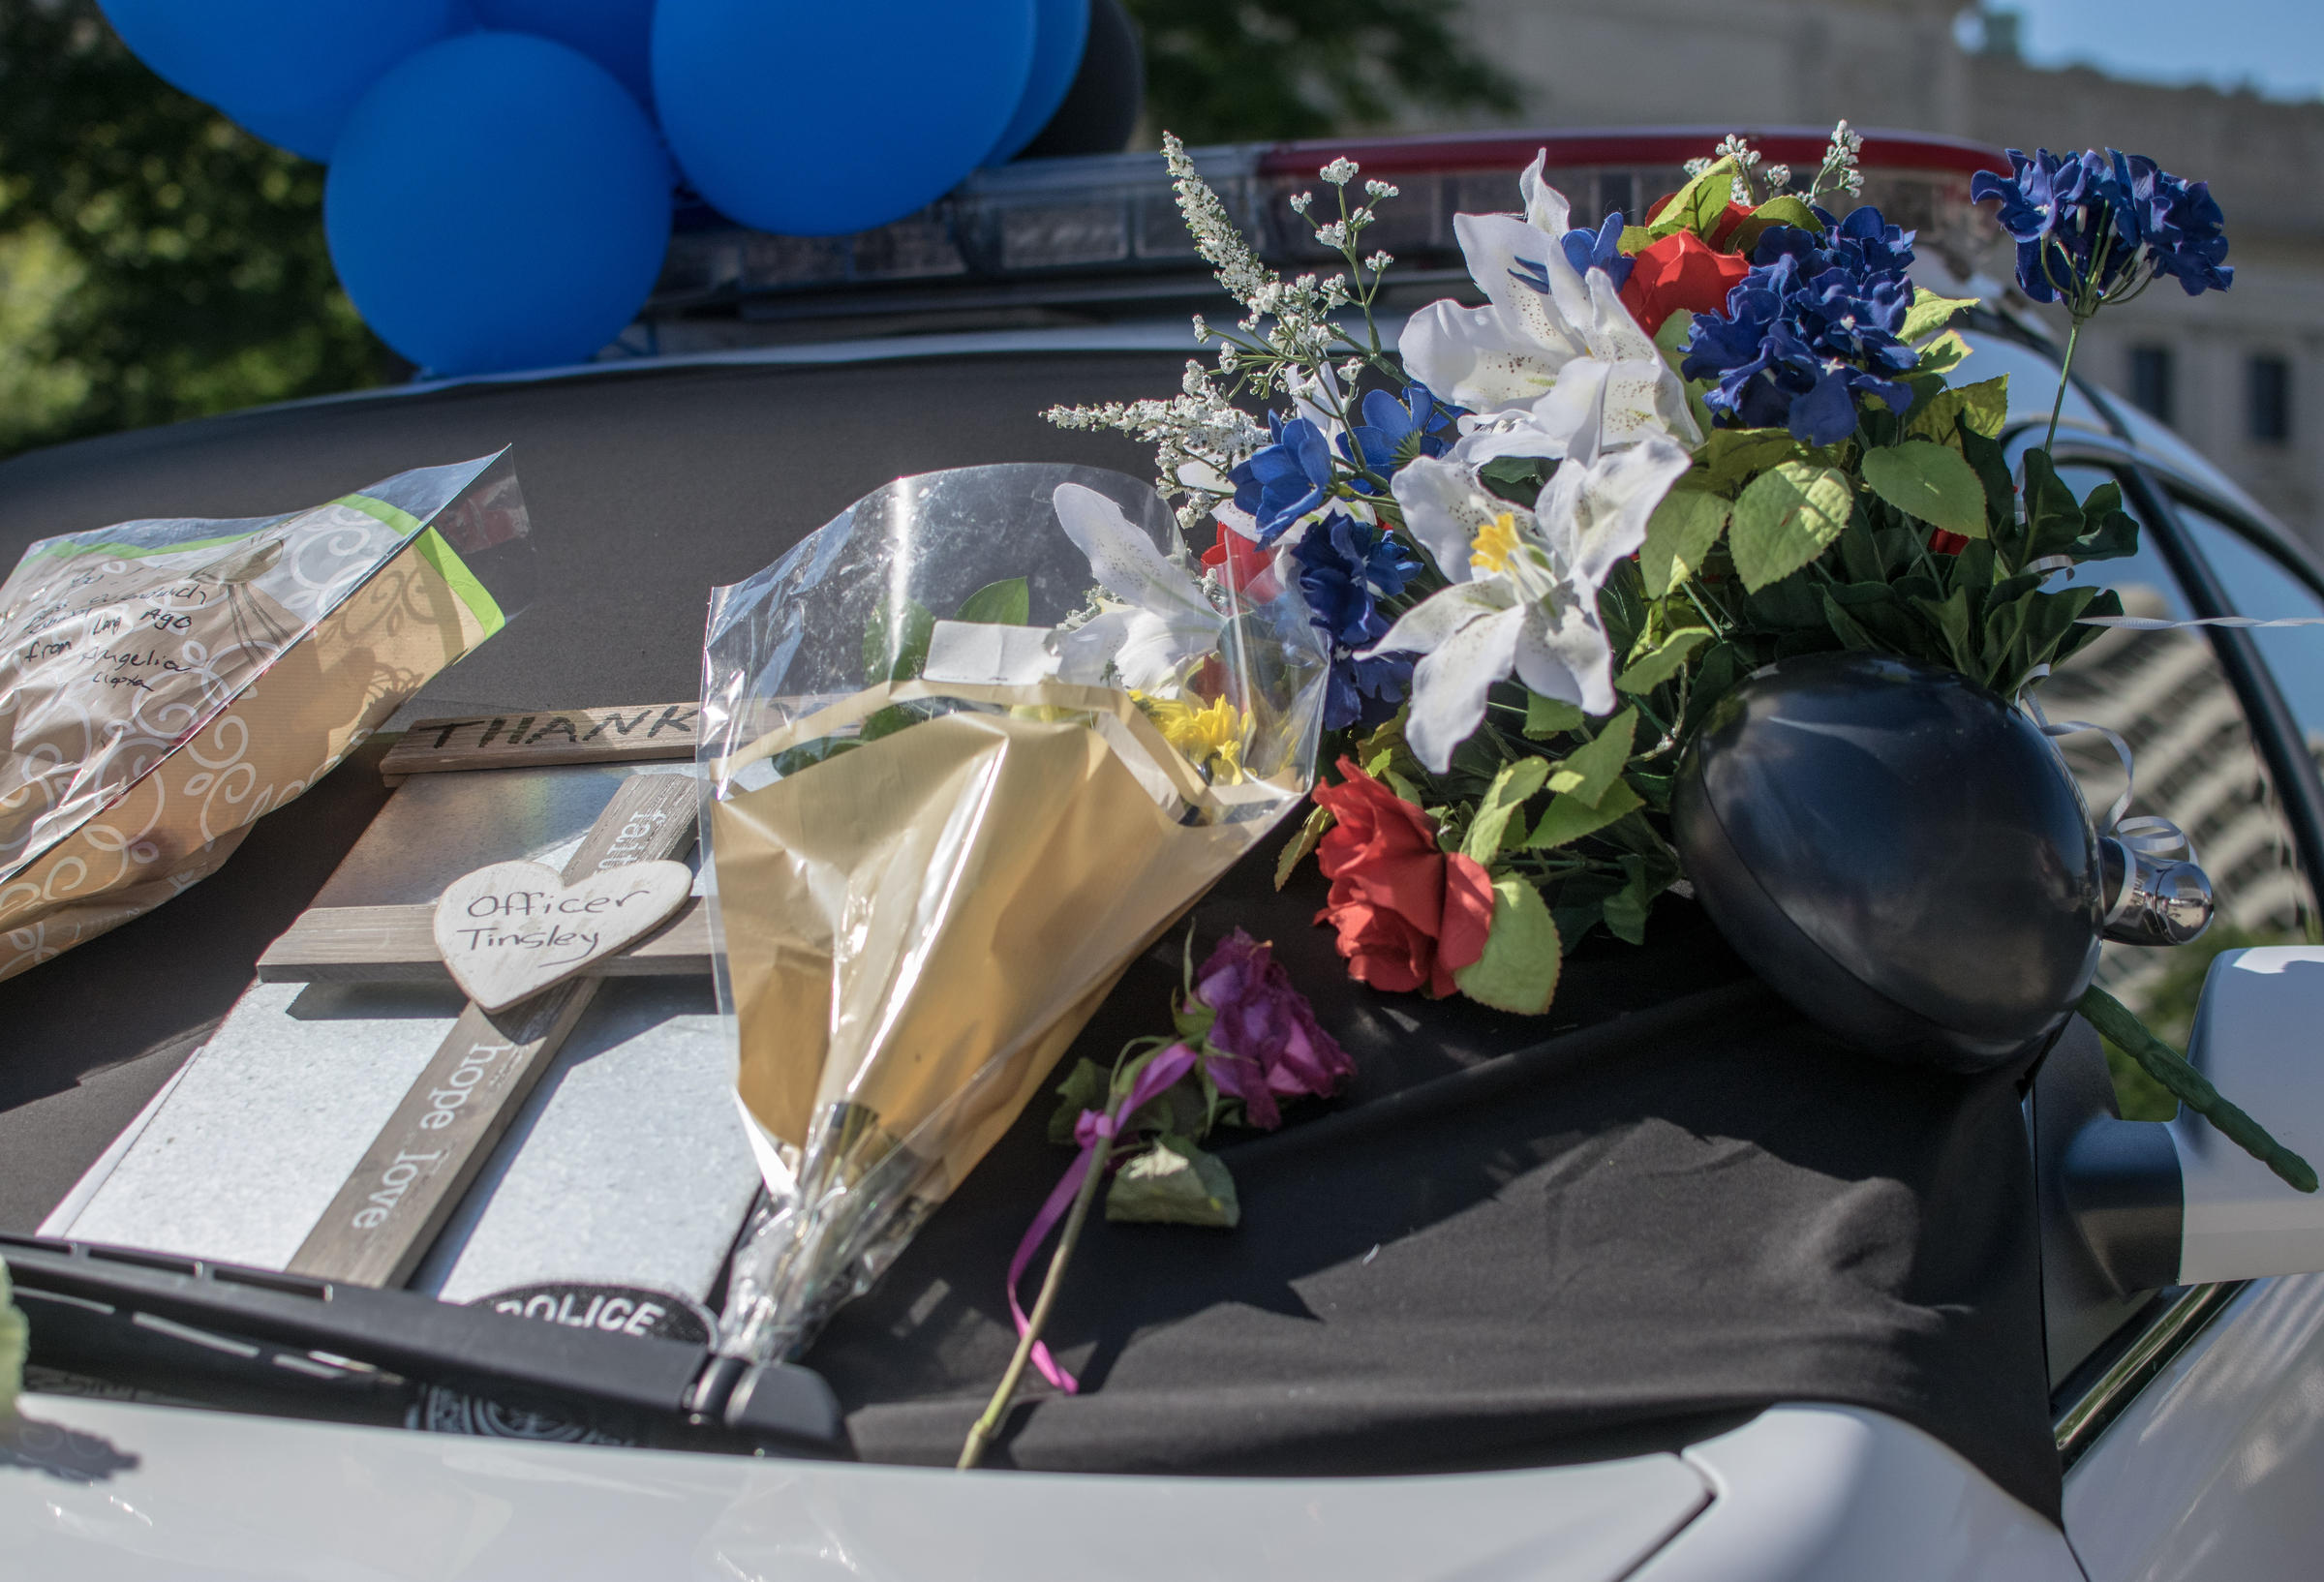 Officers funeral services set northeast indiana public radio flowers and notes adorn fwpd officer david tinsleys squad car as it sits outside the allen county courthouse as a public memorial to the officer izmirmasajfo